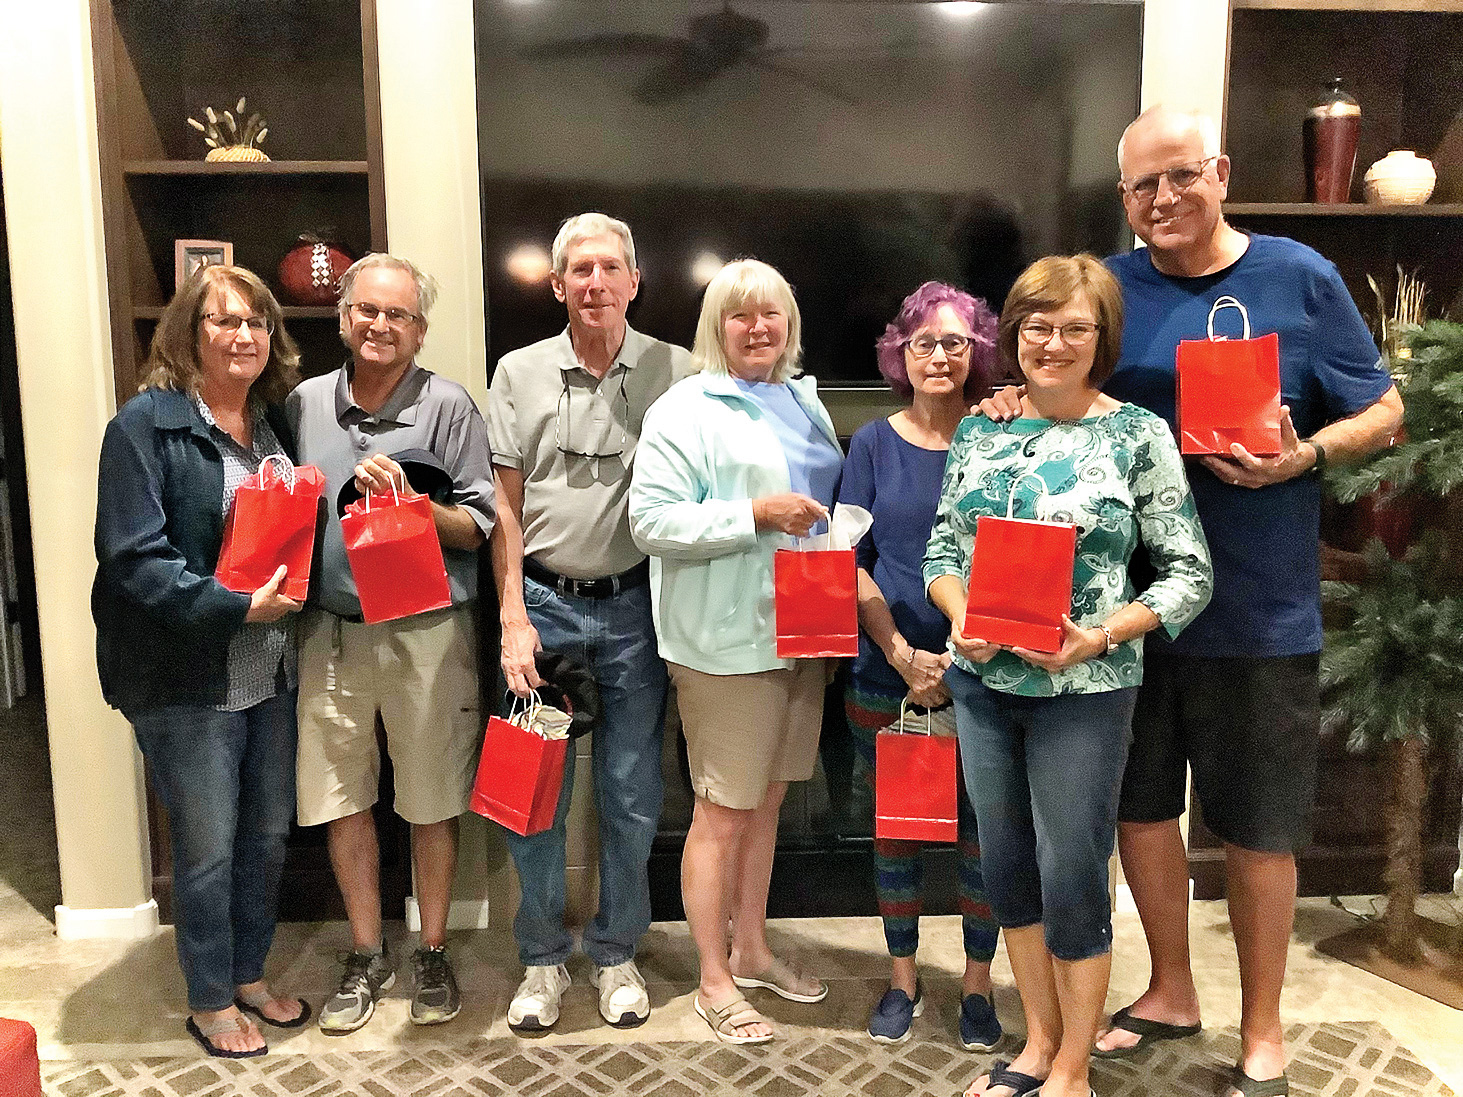 The winners of Unit 8A's April 2021 Tuesday Trivia (left to right): Vicki Froistad, Dave Ambler, Paul and Kate Thomsen, Gail Latimer, and Jeanne and Rich Osterlund